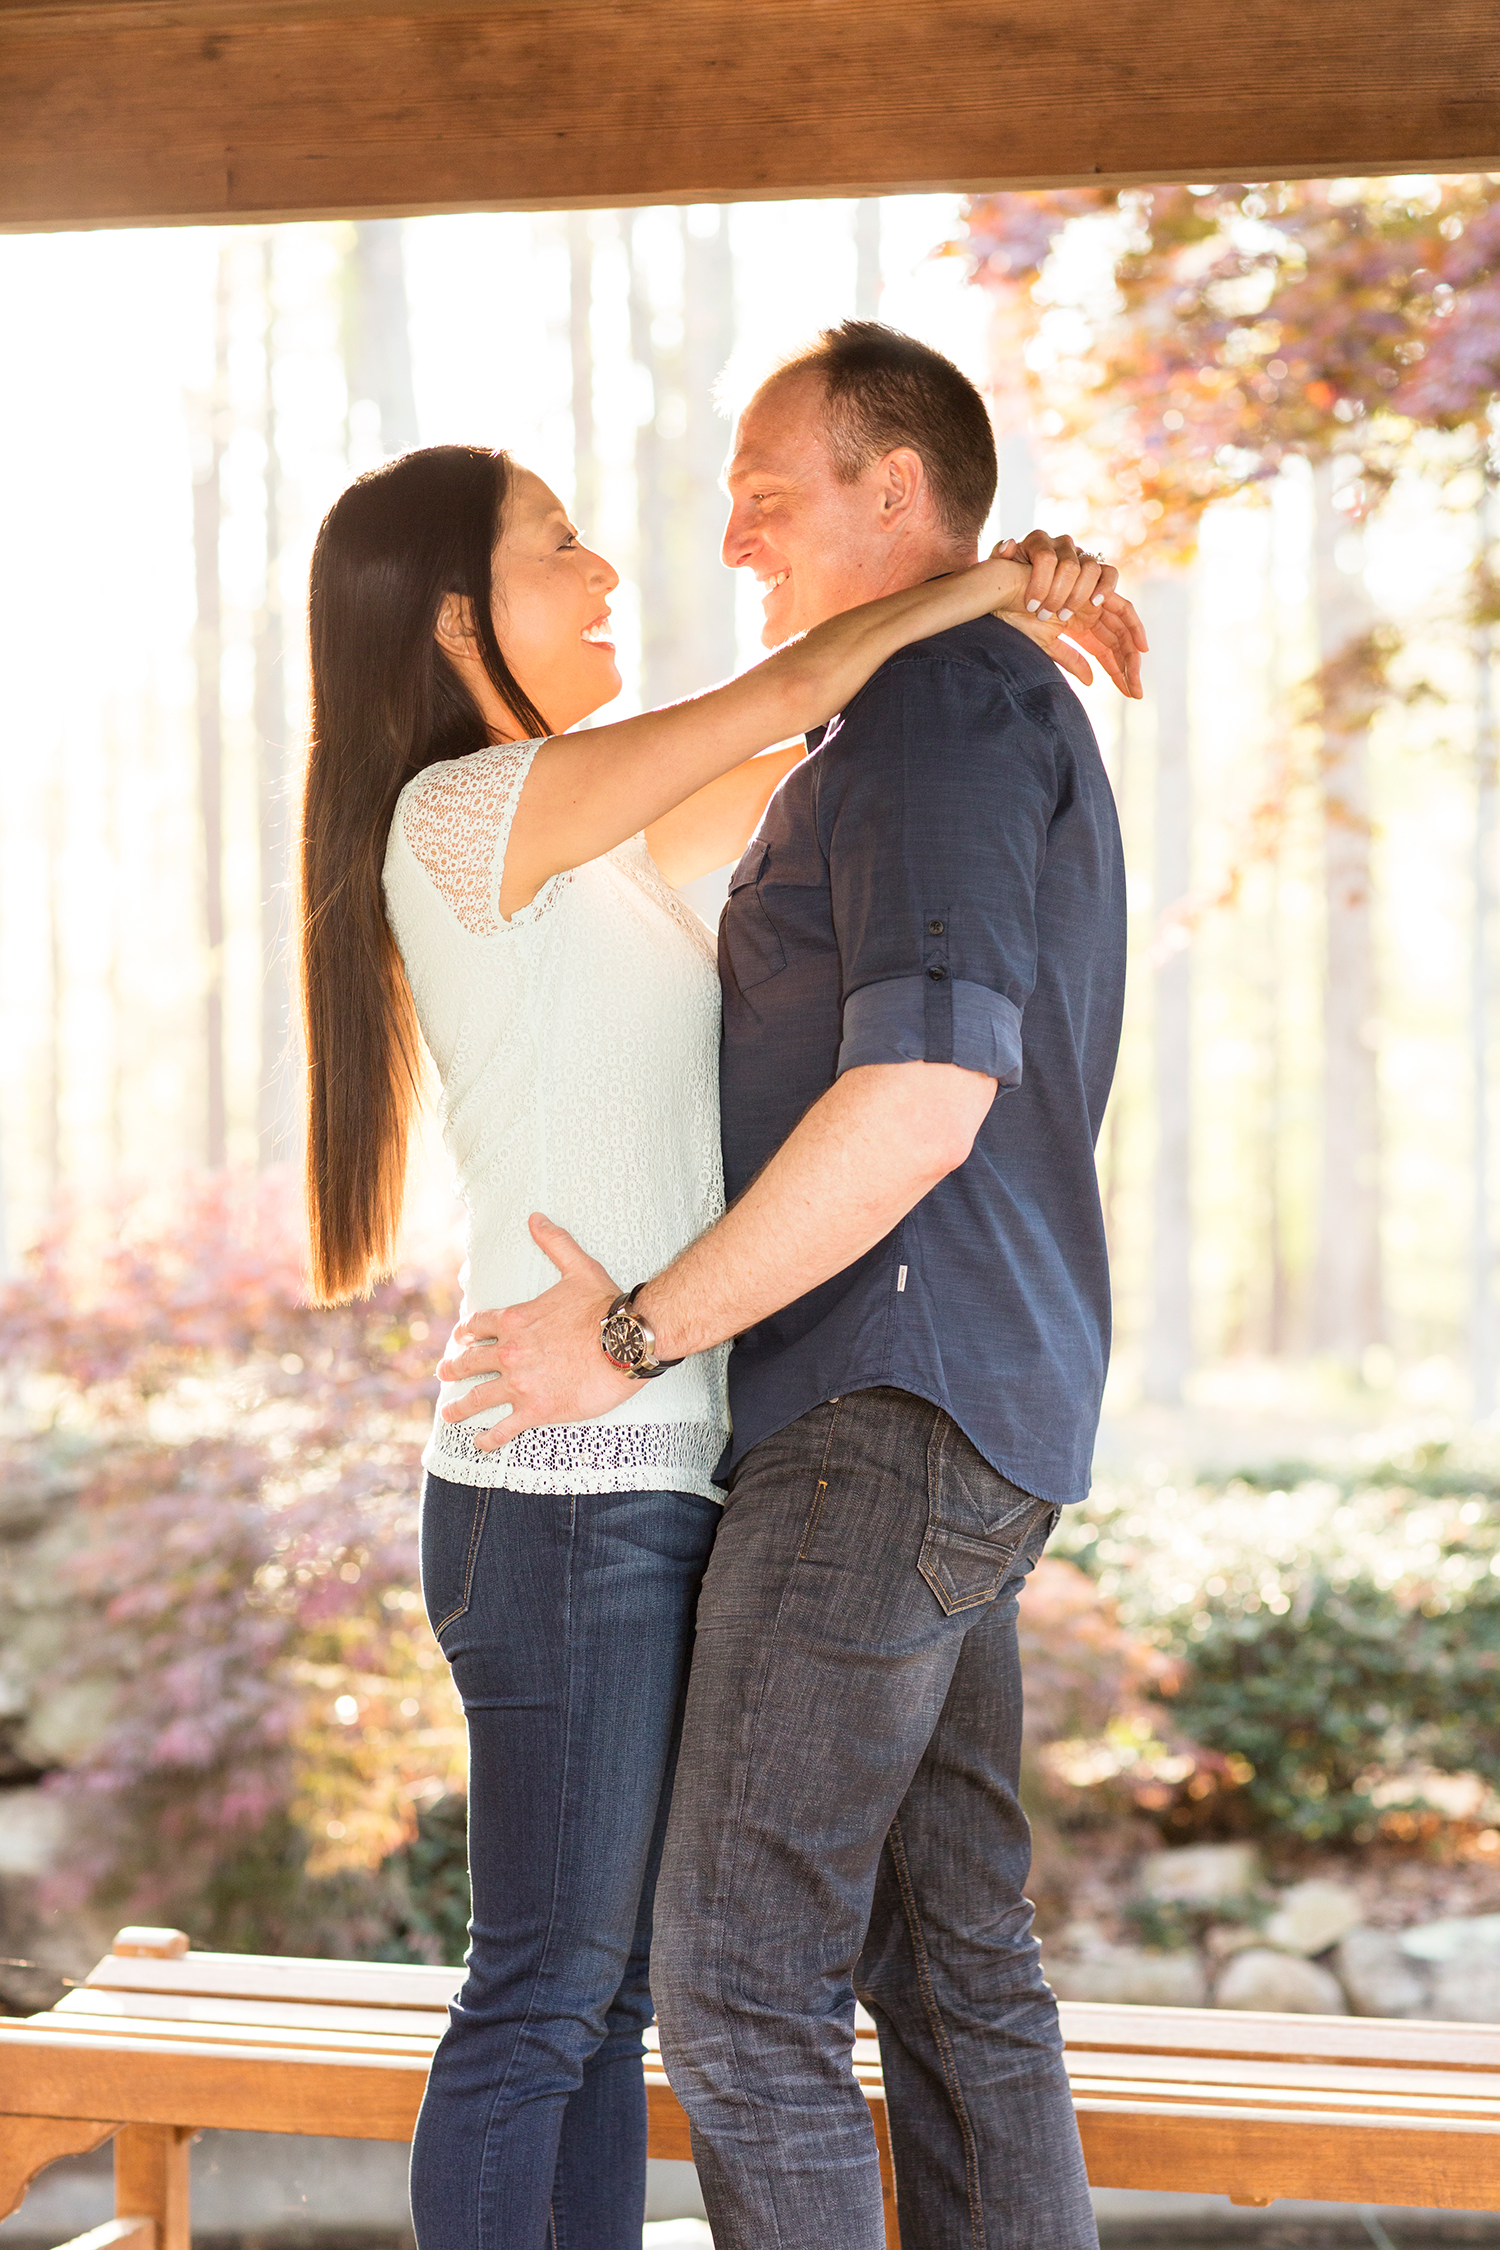 Spring Engagement Shoot at Celebrations - Image Property of www.j-dphoto.com